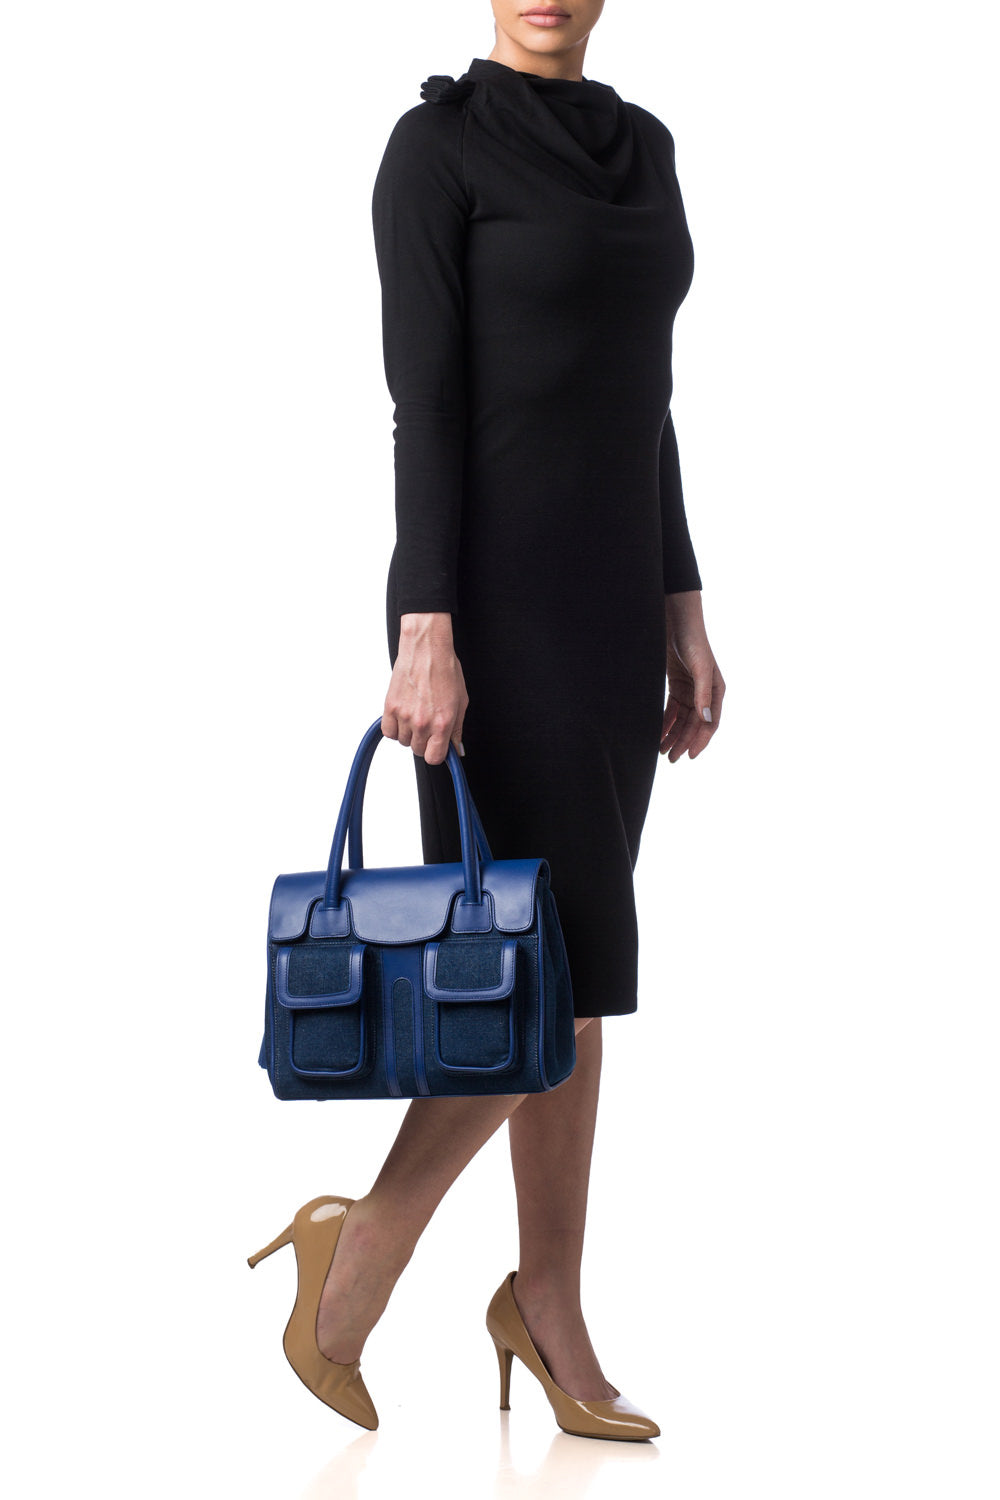 Denim & Cobalt Leather Christy Mini Tote | Mel Boteri Designer Handbags | New Summer Collection